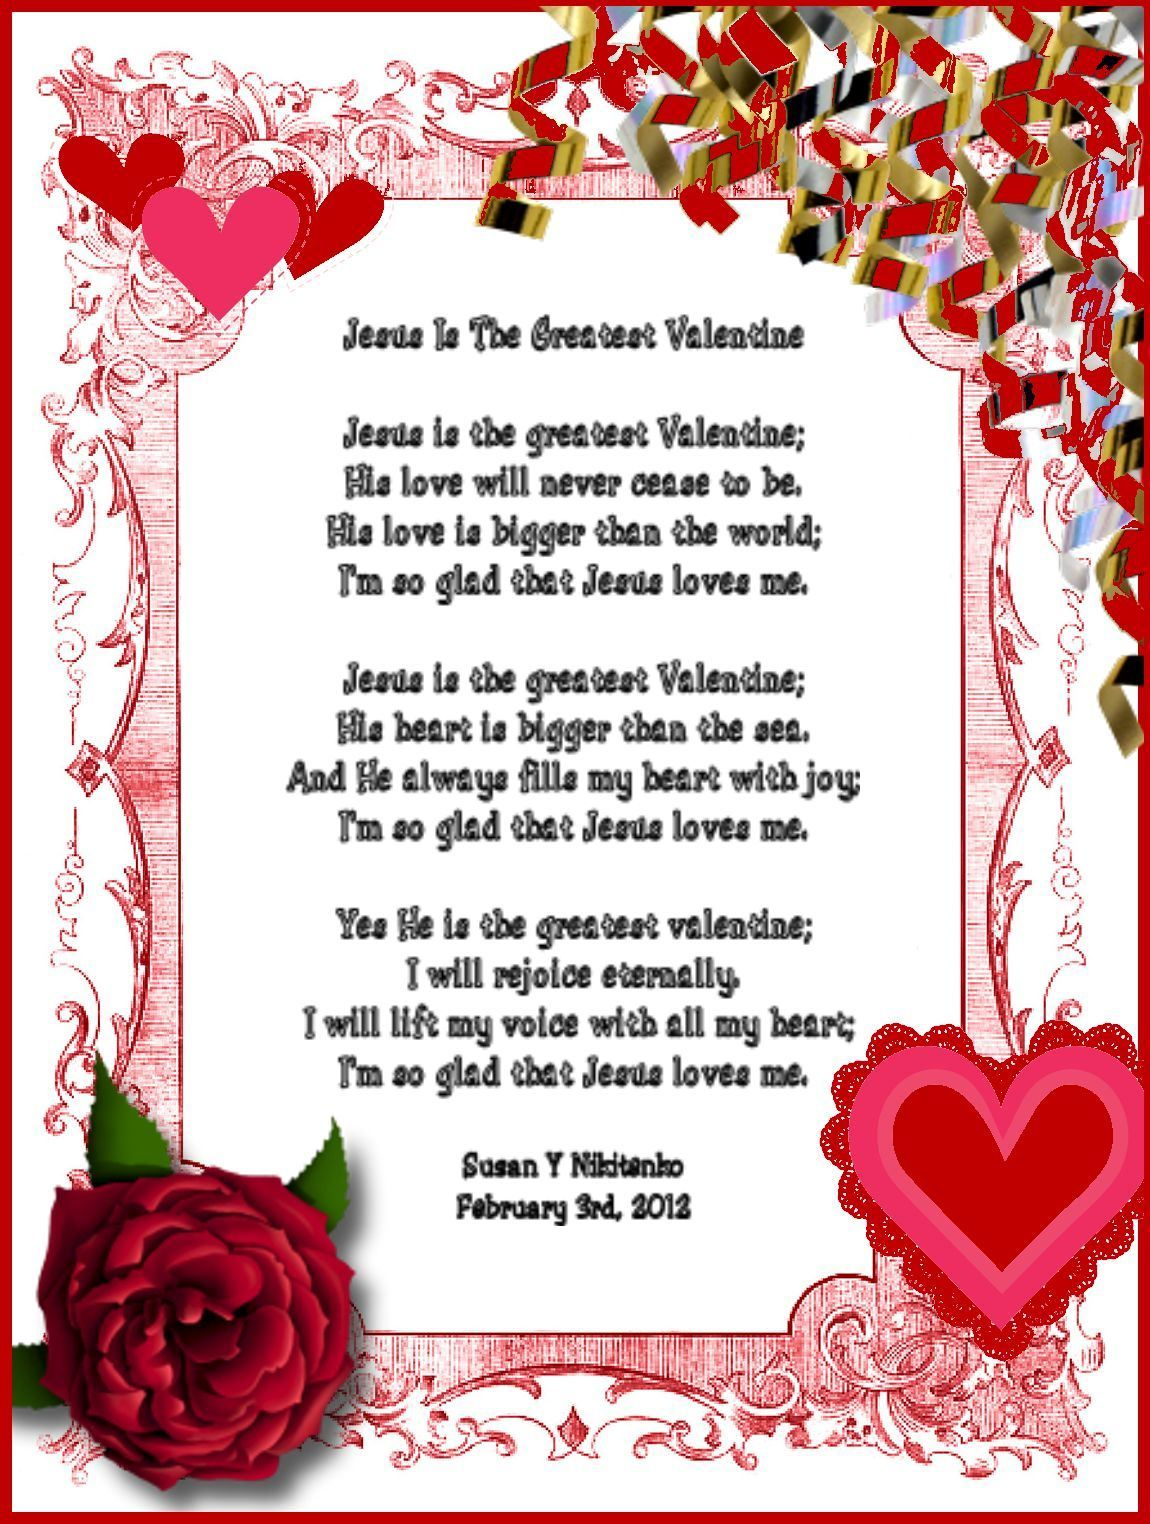 Christian Valentines Day Quotes Christian Valentines Day Quotes Dchristian Images In My Treasure